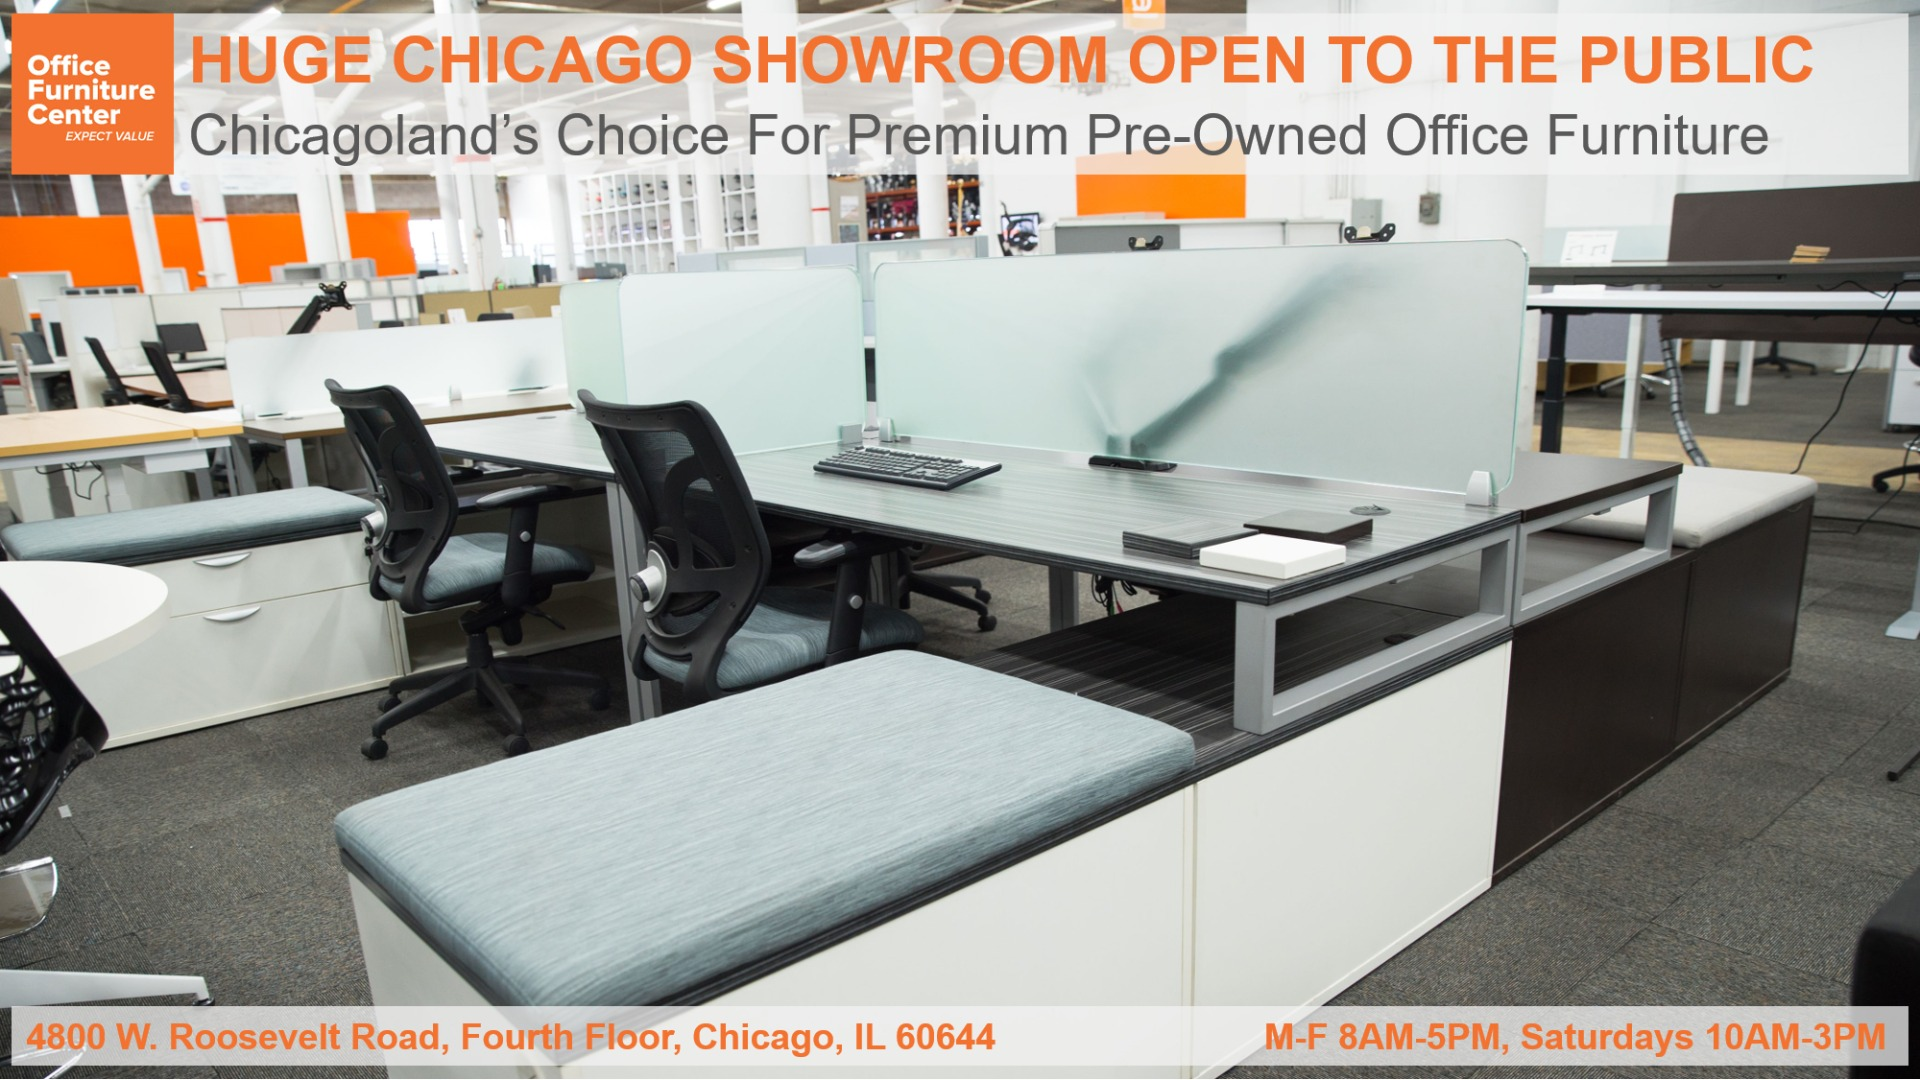 New and Used Office Furniture Chicago   Office Furniture Center